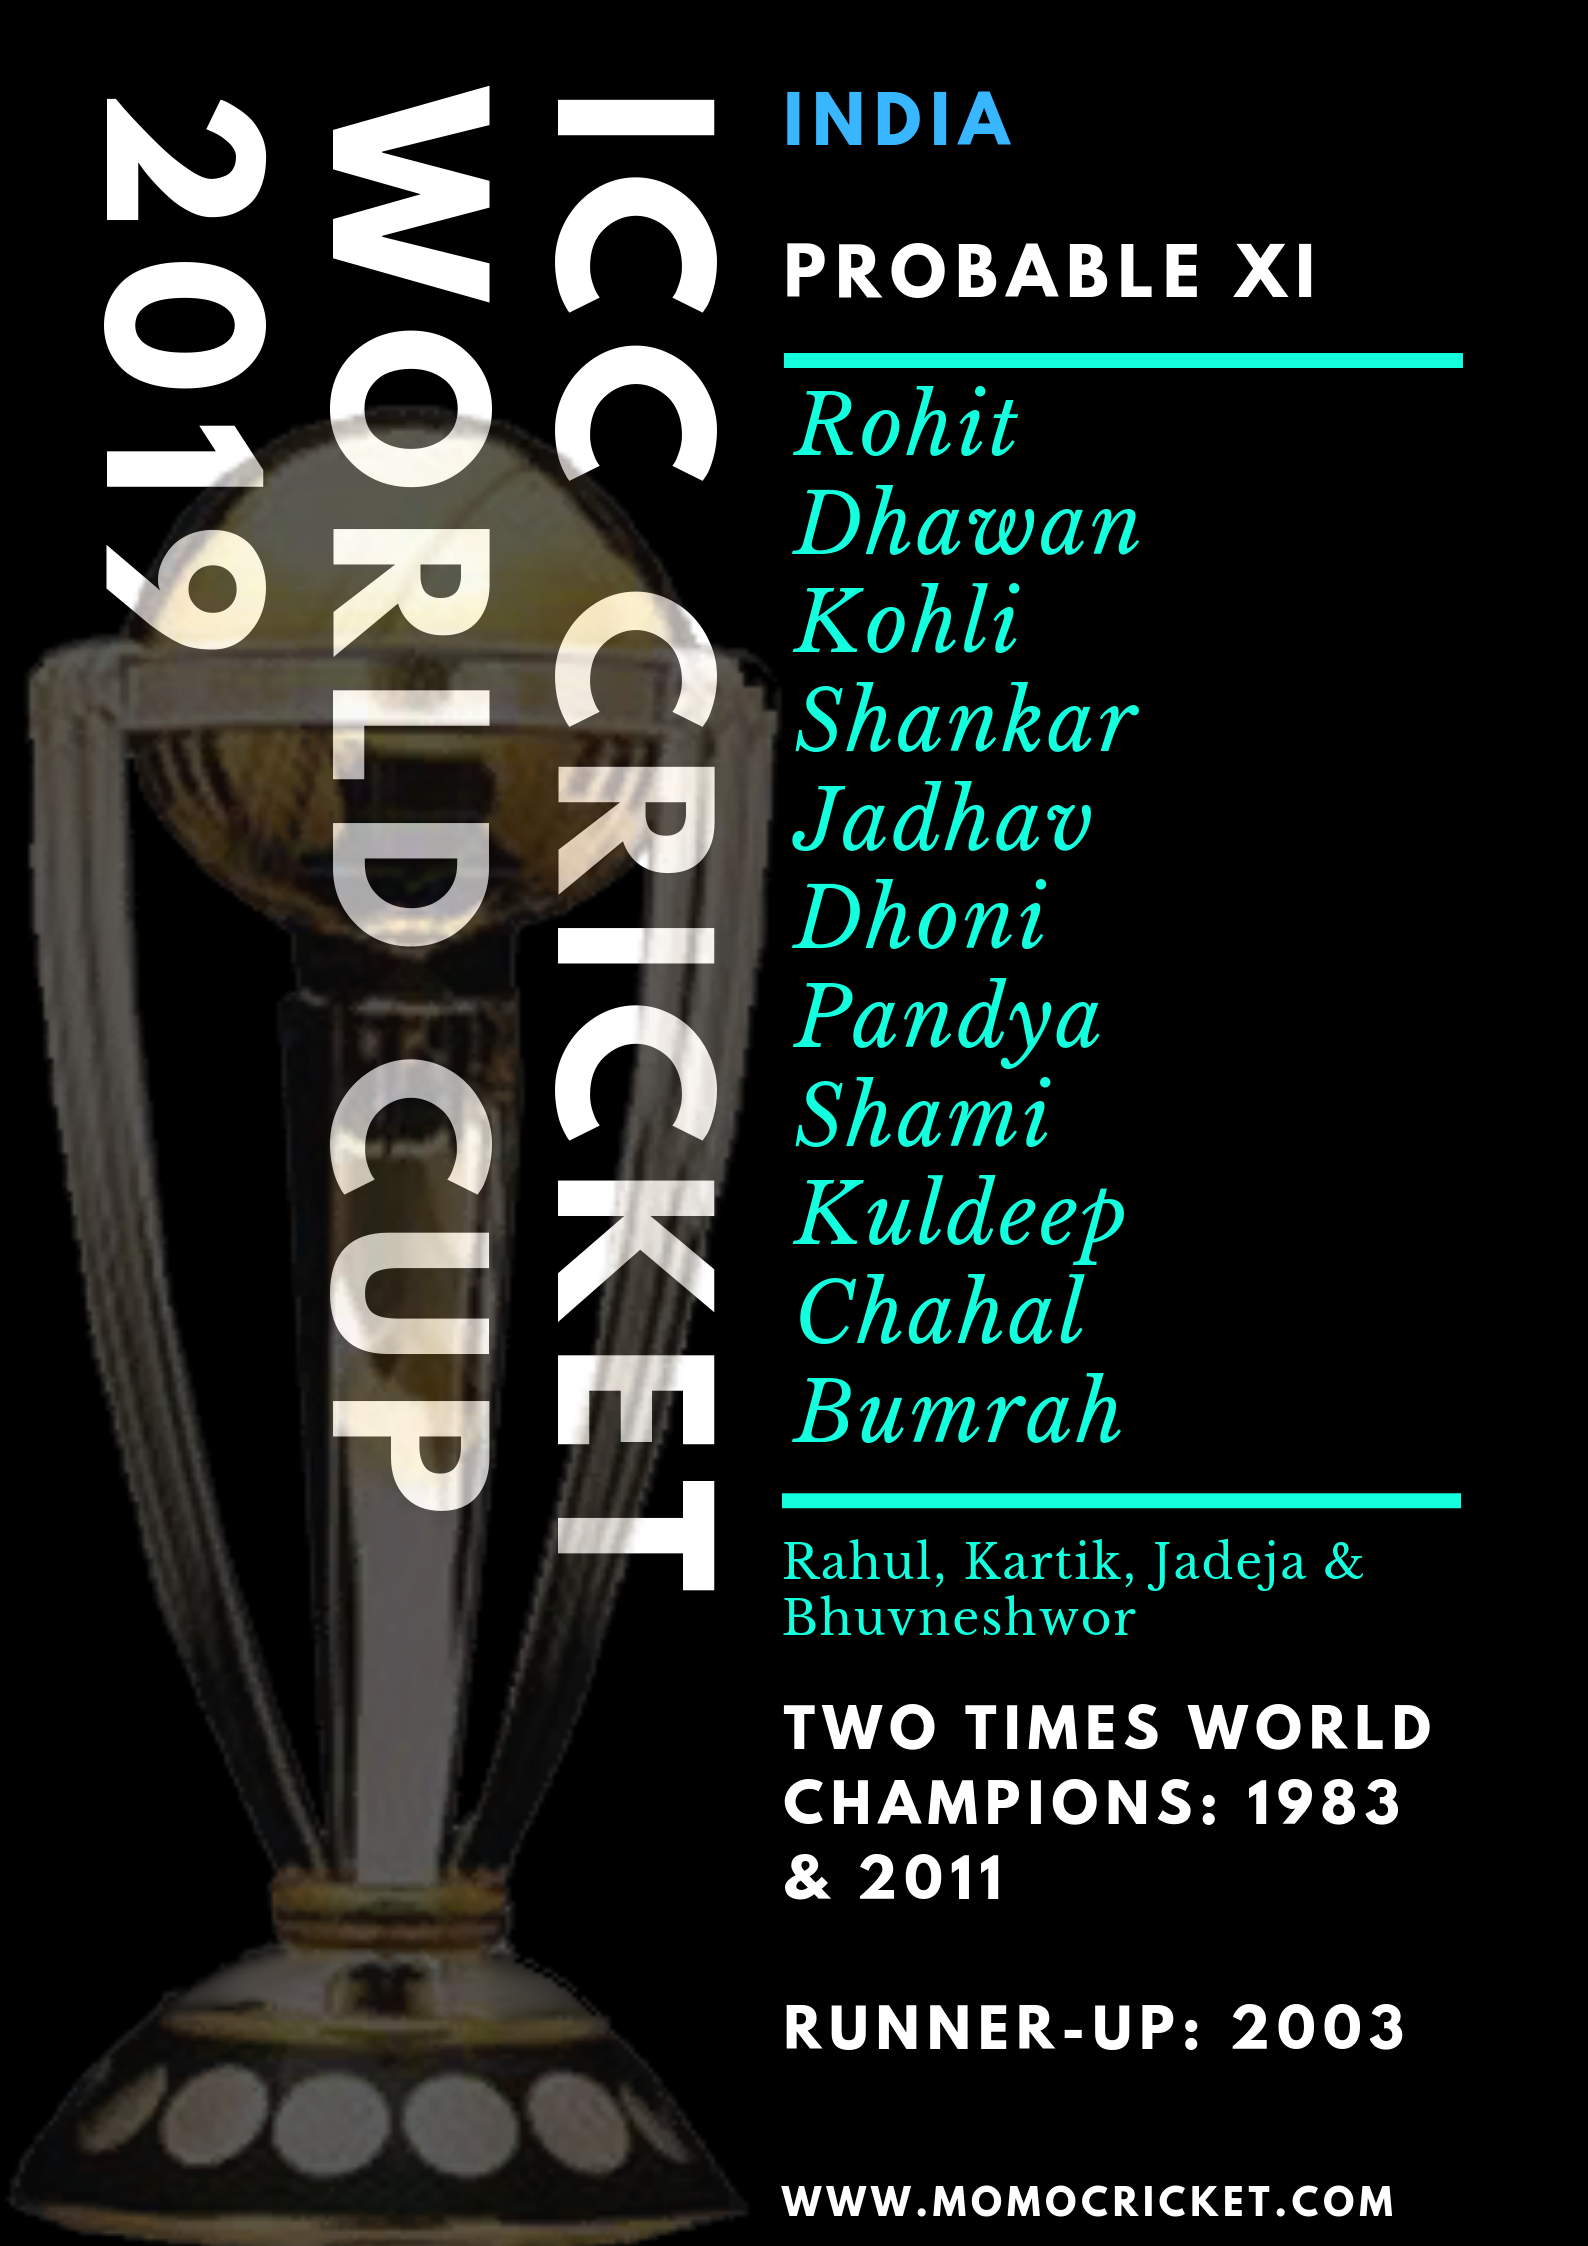 ICC Cricket World Cup Preview India